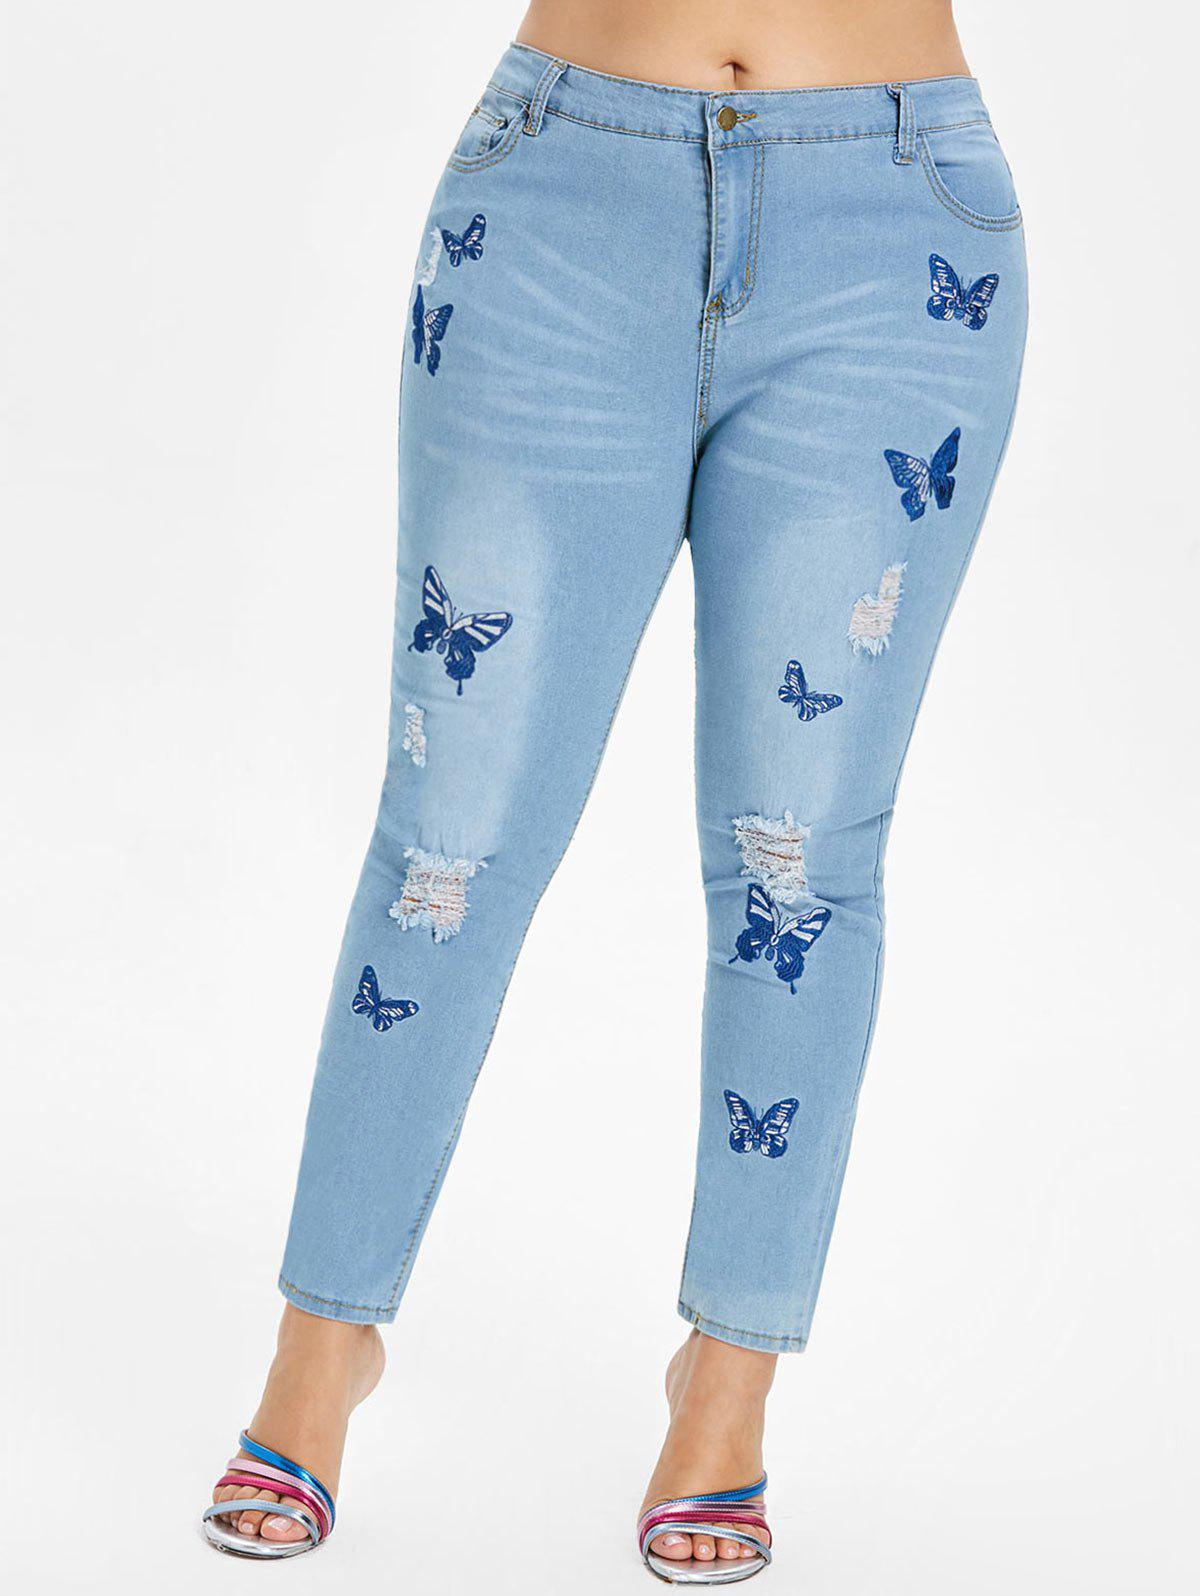 Plus Size Butterfly Embroidered Zipper Jeans - JEANS BLUE 5X